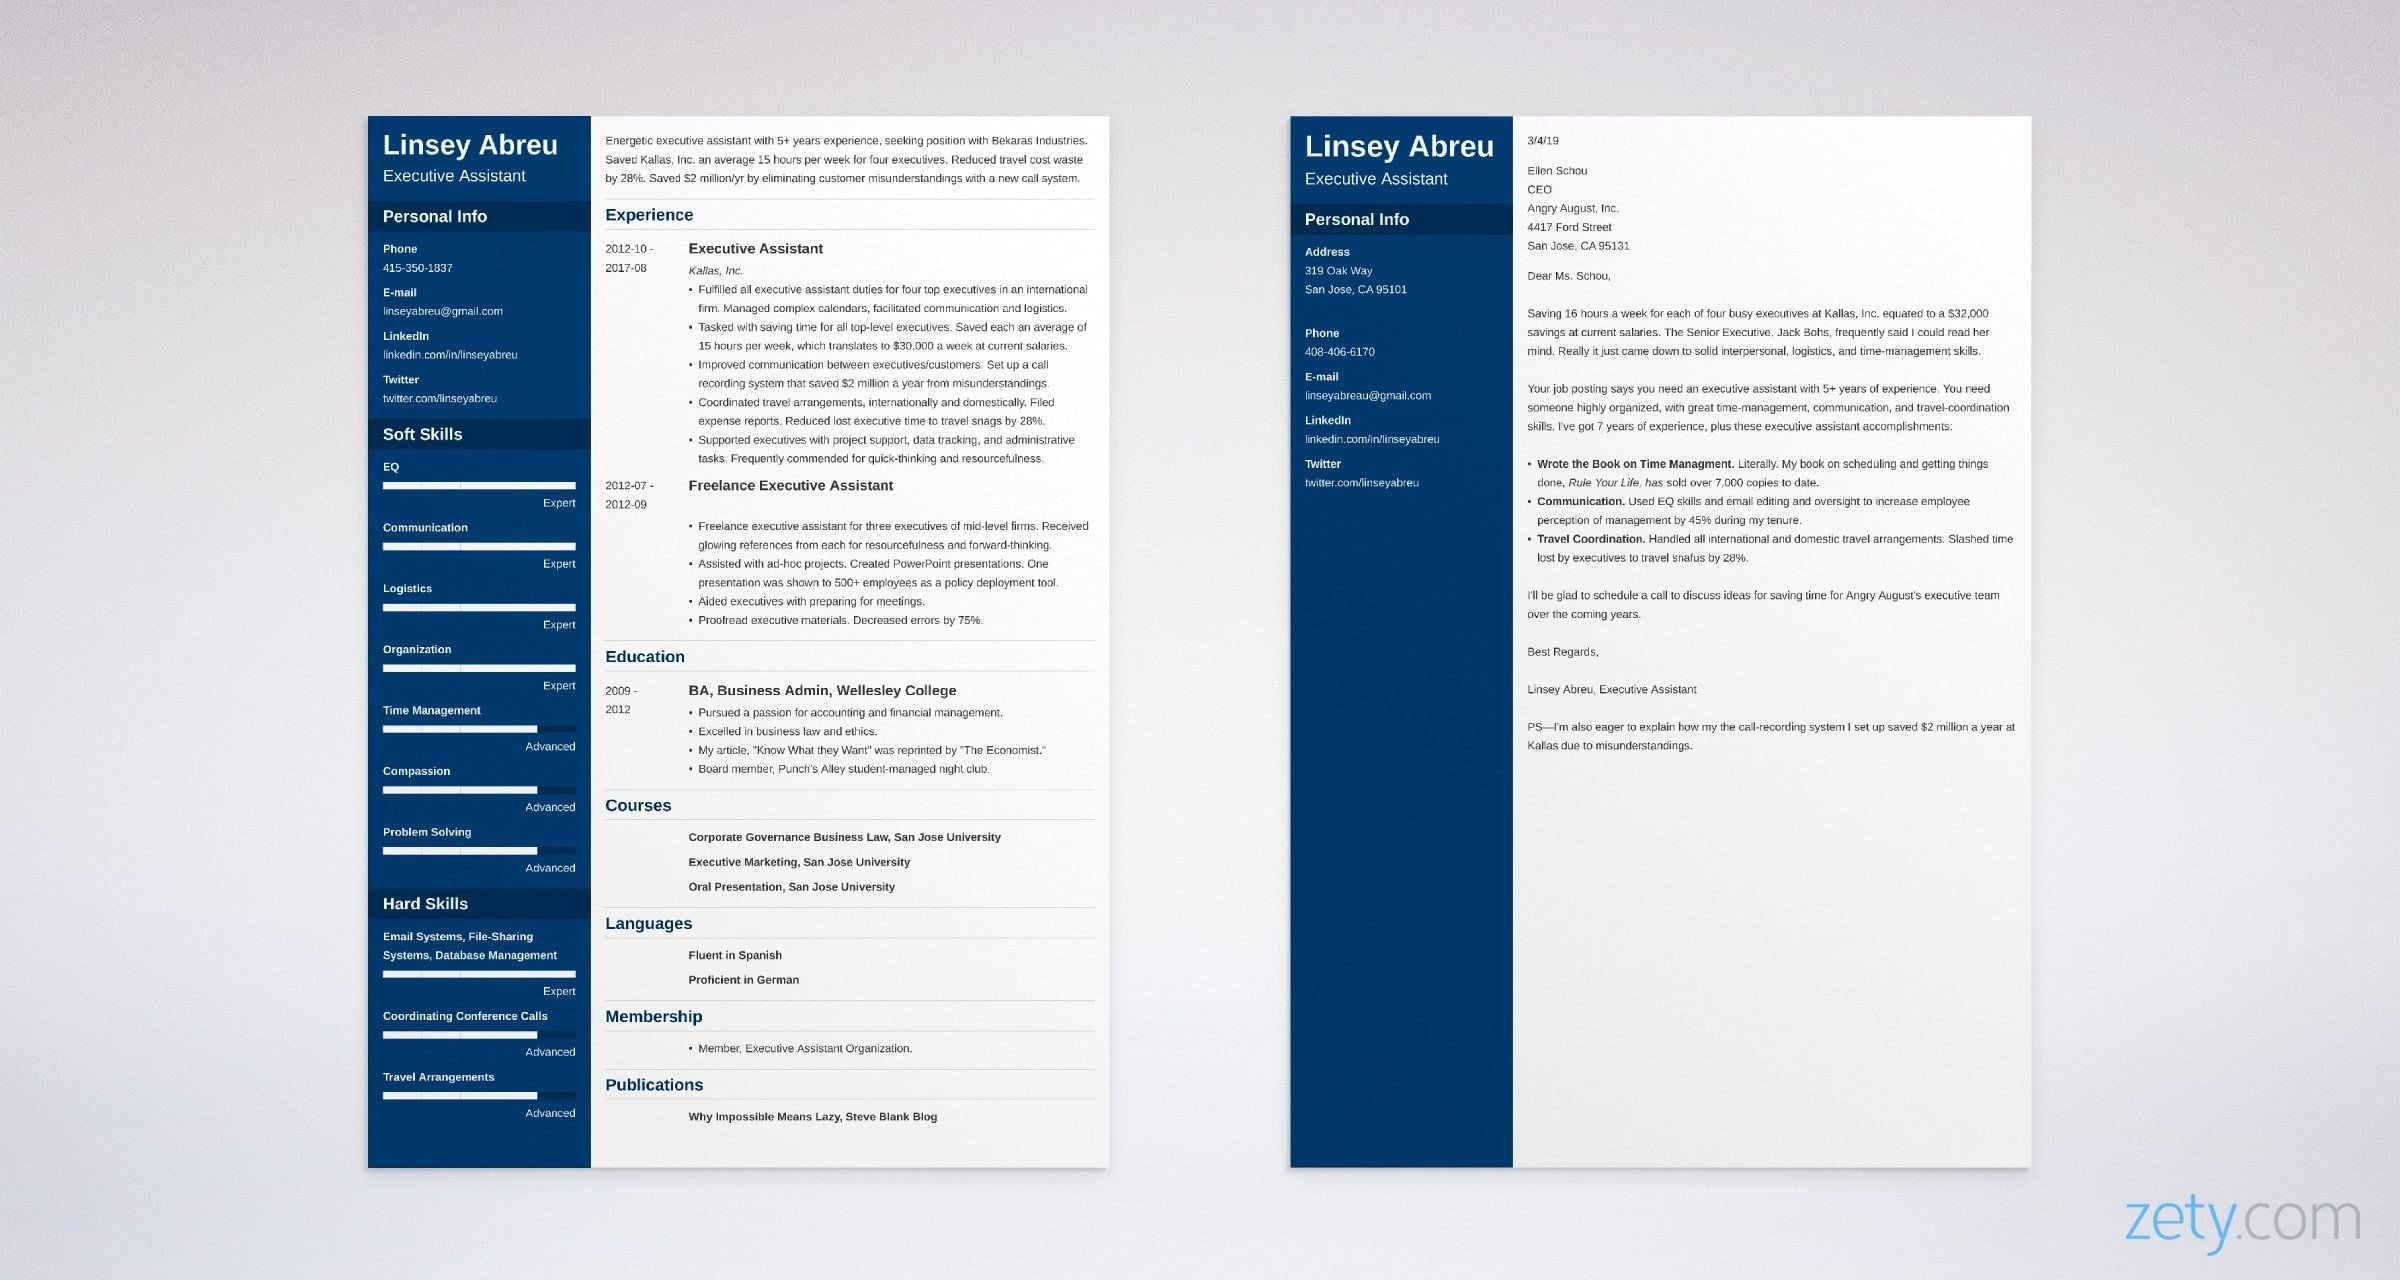 executive assistant resume and cover letter set